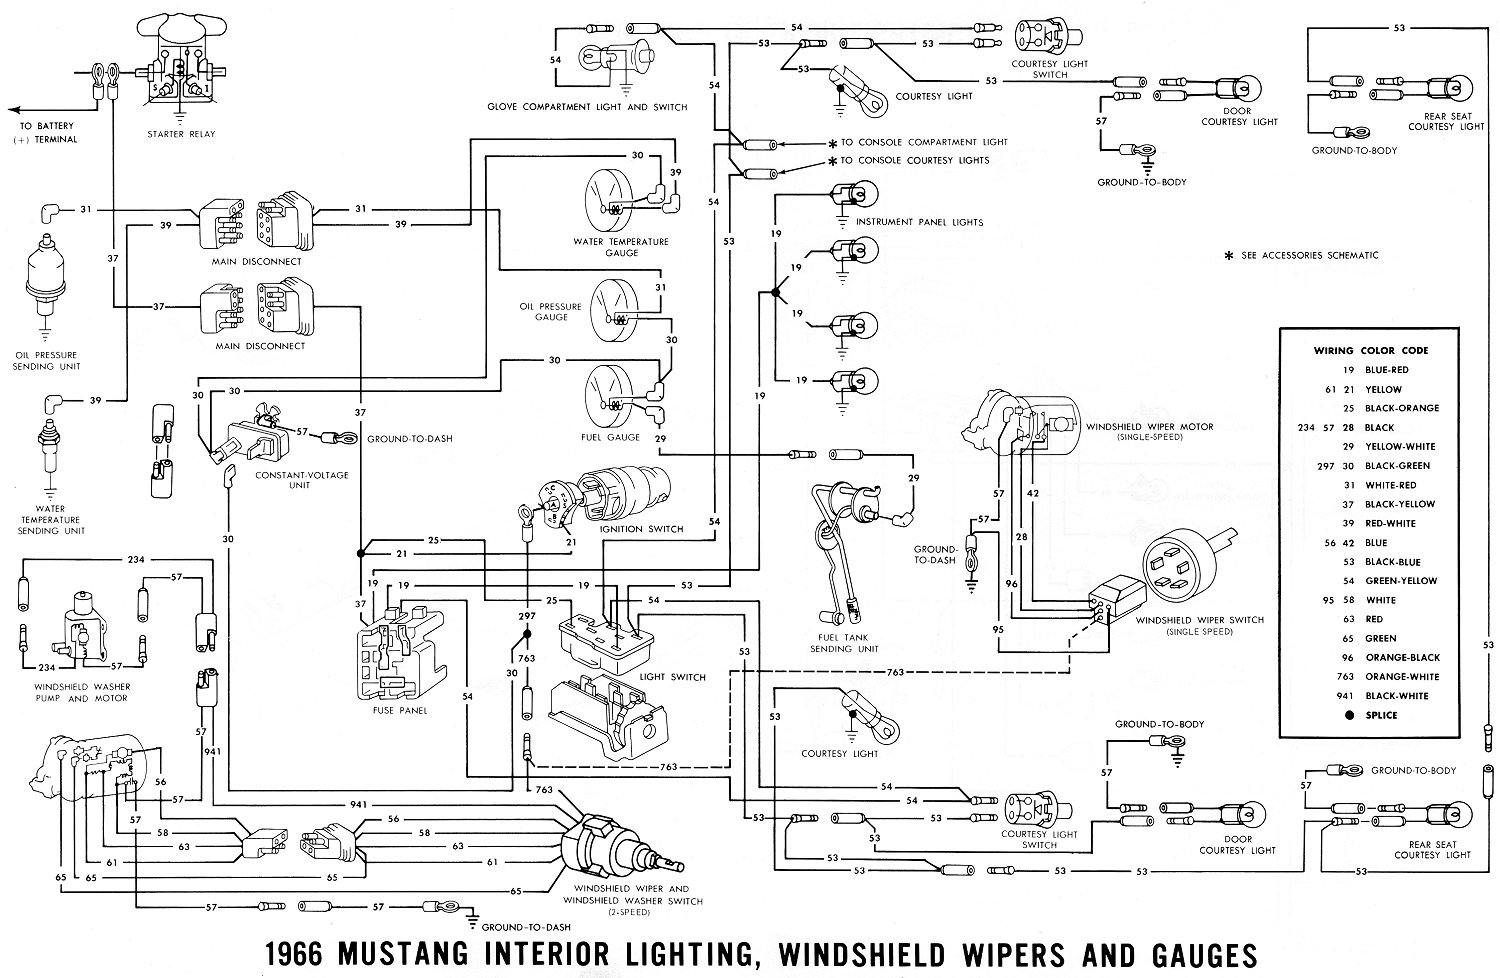 66inter1 65 mustang wiring diagram 1965 mustang alternator wiring \u2022 wiring sick dt50 wiring diagram at nearapp.co